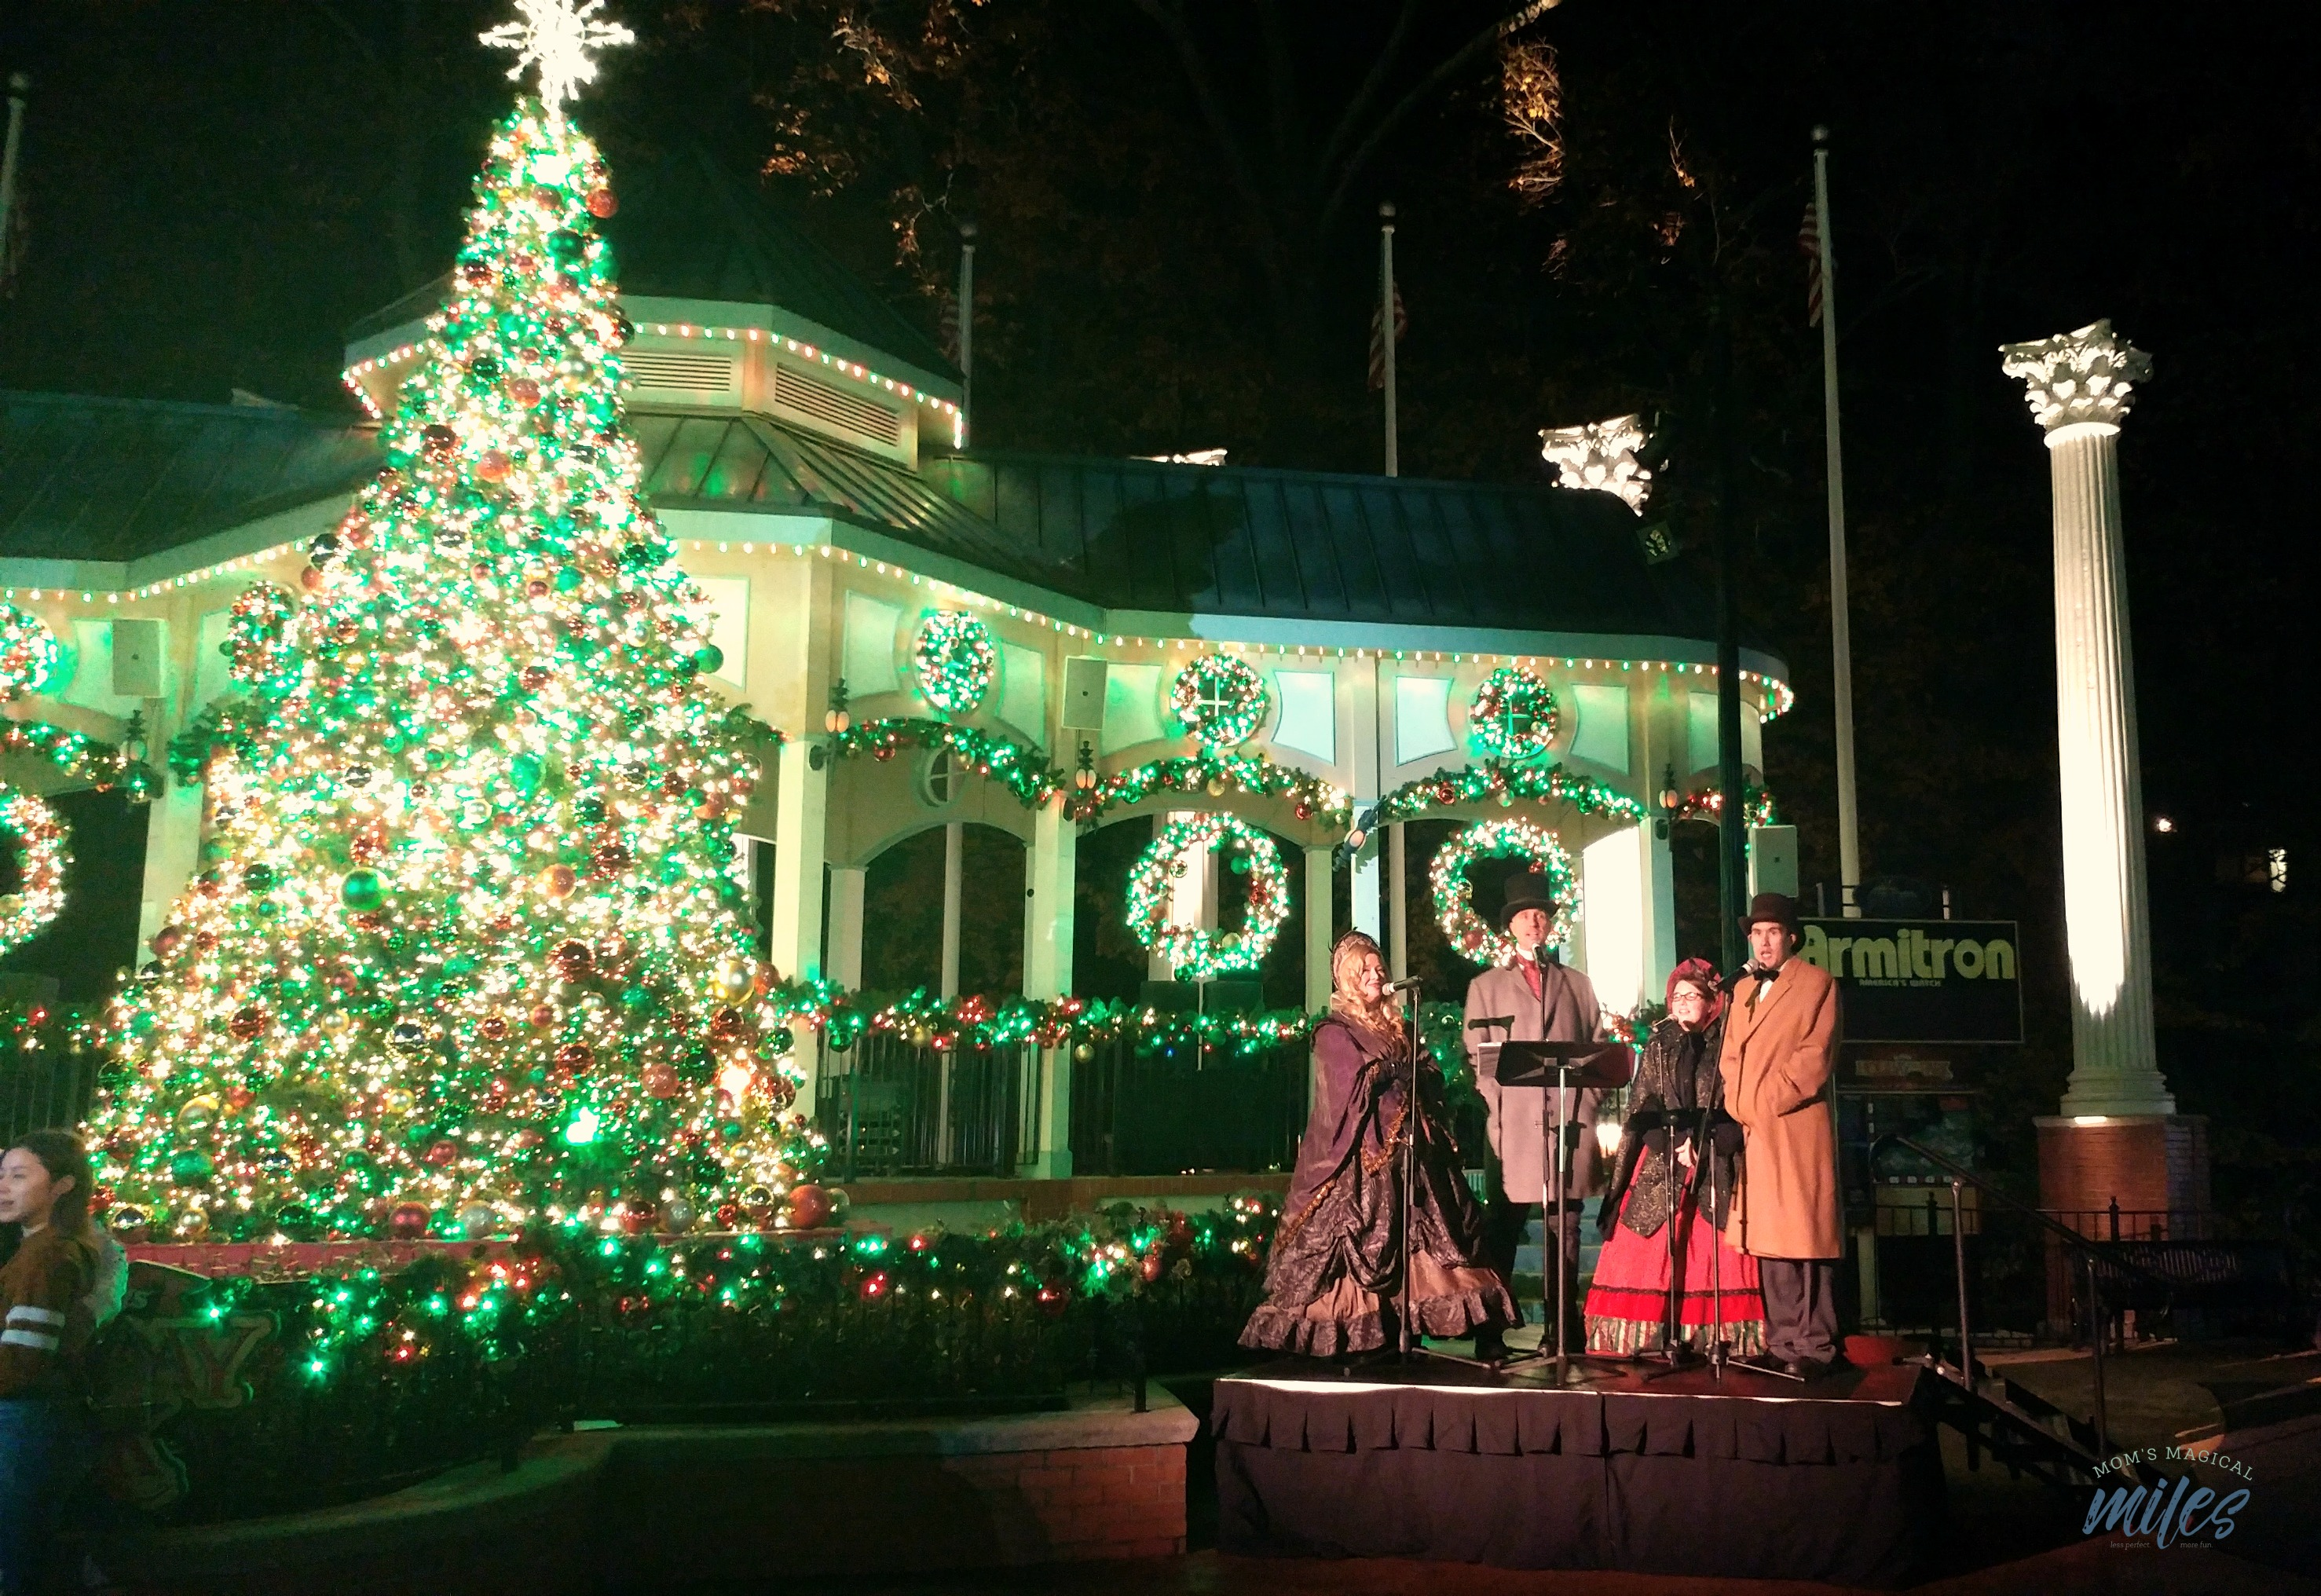 The entertainment at Six Flags Holiday in the Park includes carolers, shows and more!